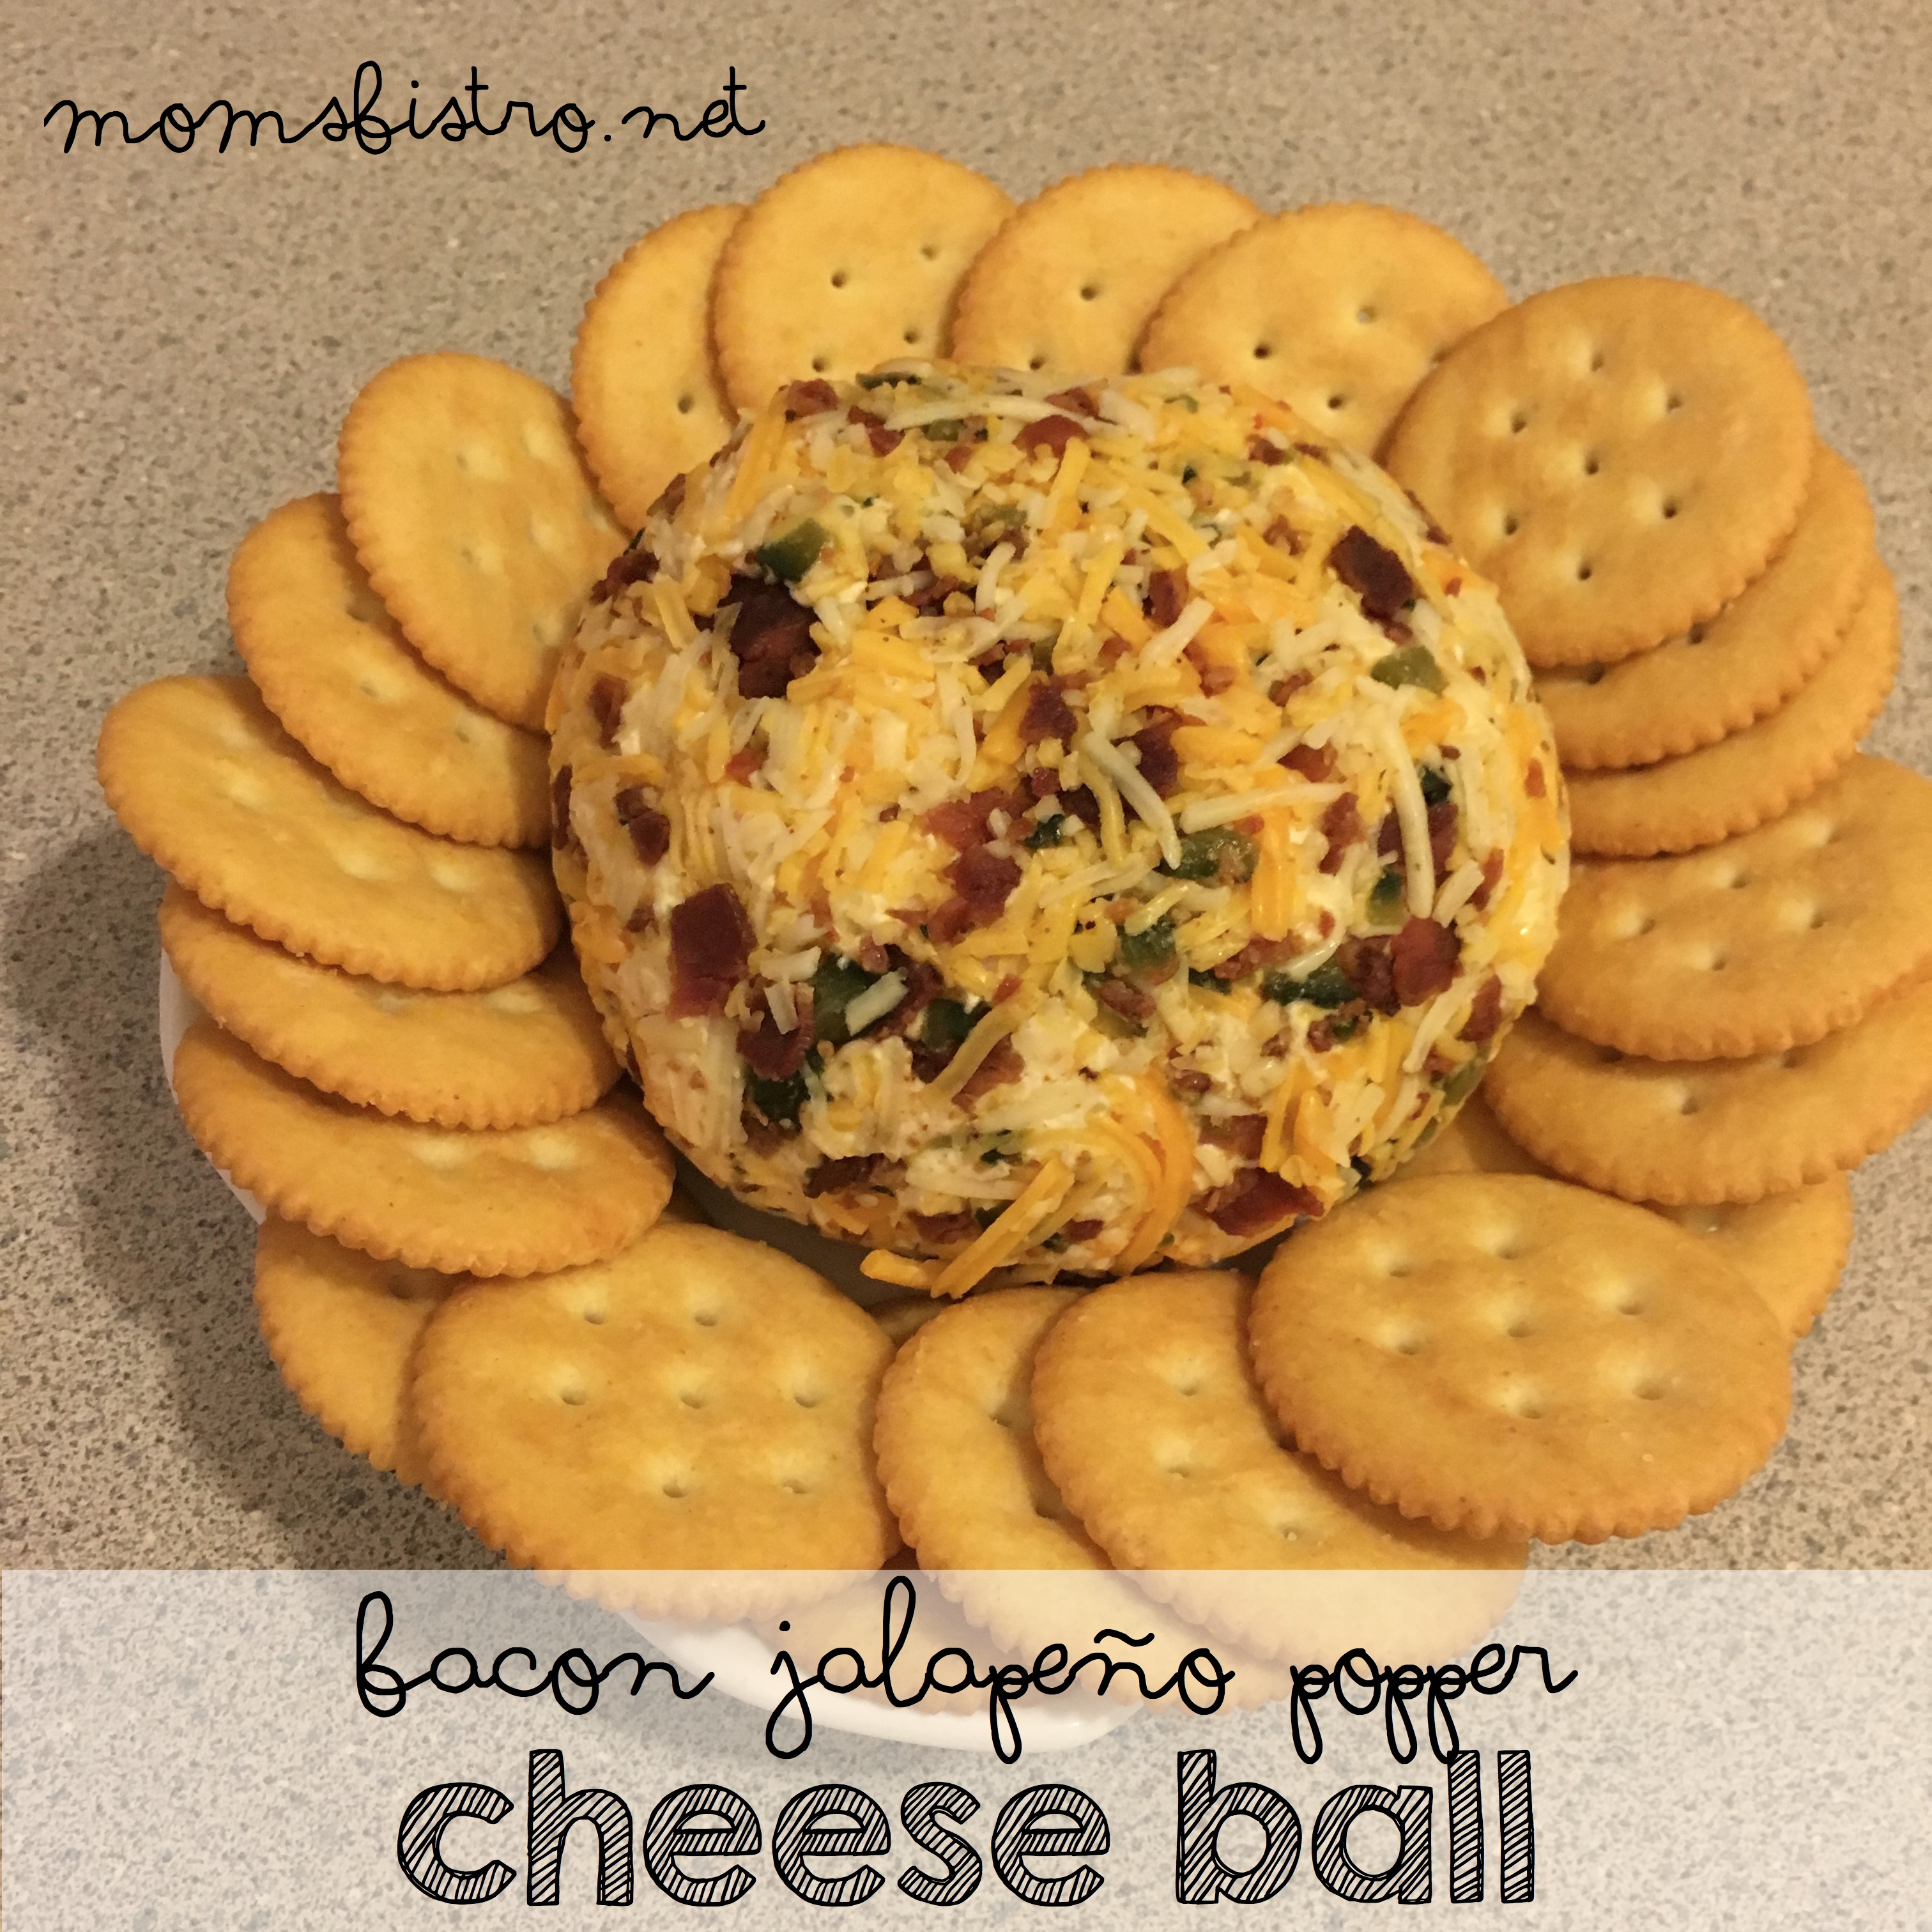 Bacon Lovers Rejoice!  This Easy 6-Ingredient Bacon Jalapeño Popper Cheeseball Is Sure To Be a Hit At This Years Holiday Party!